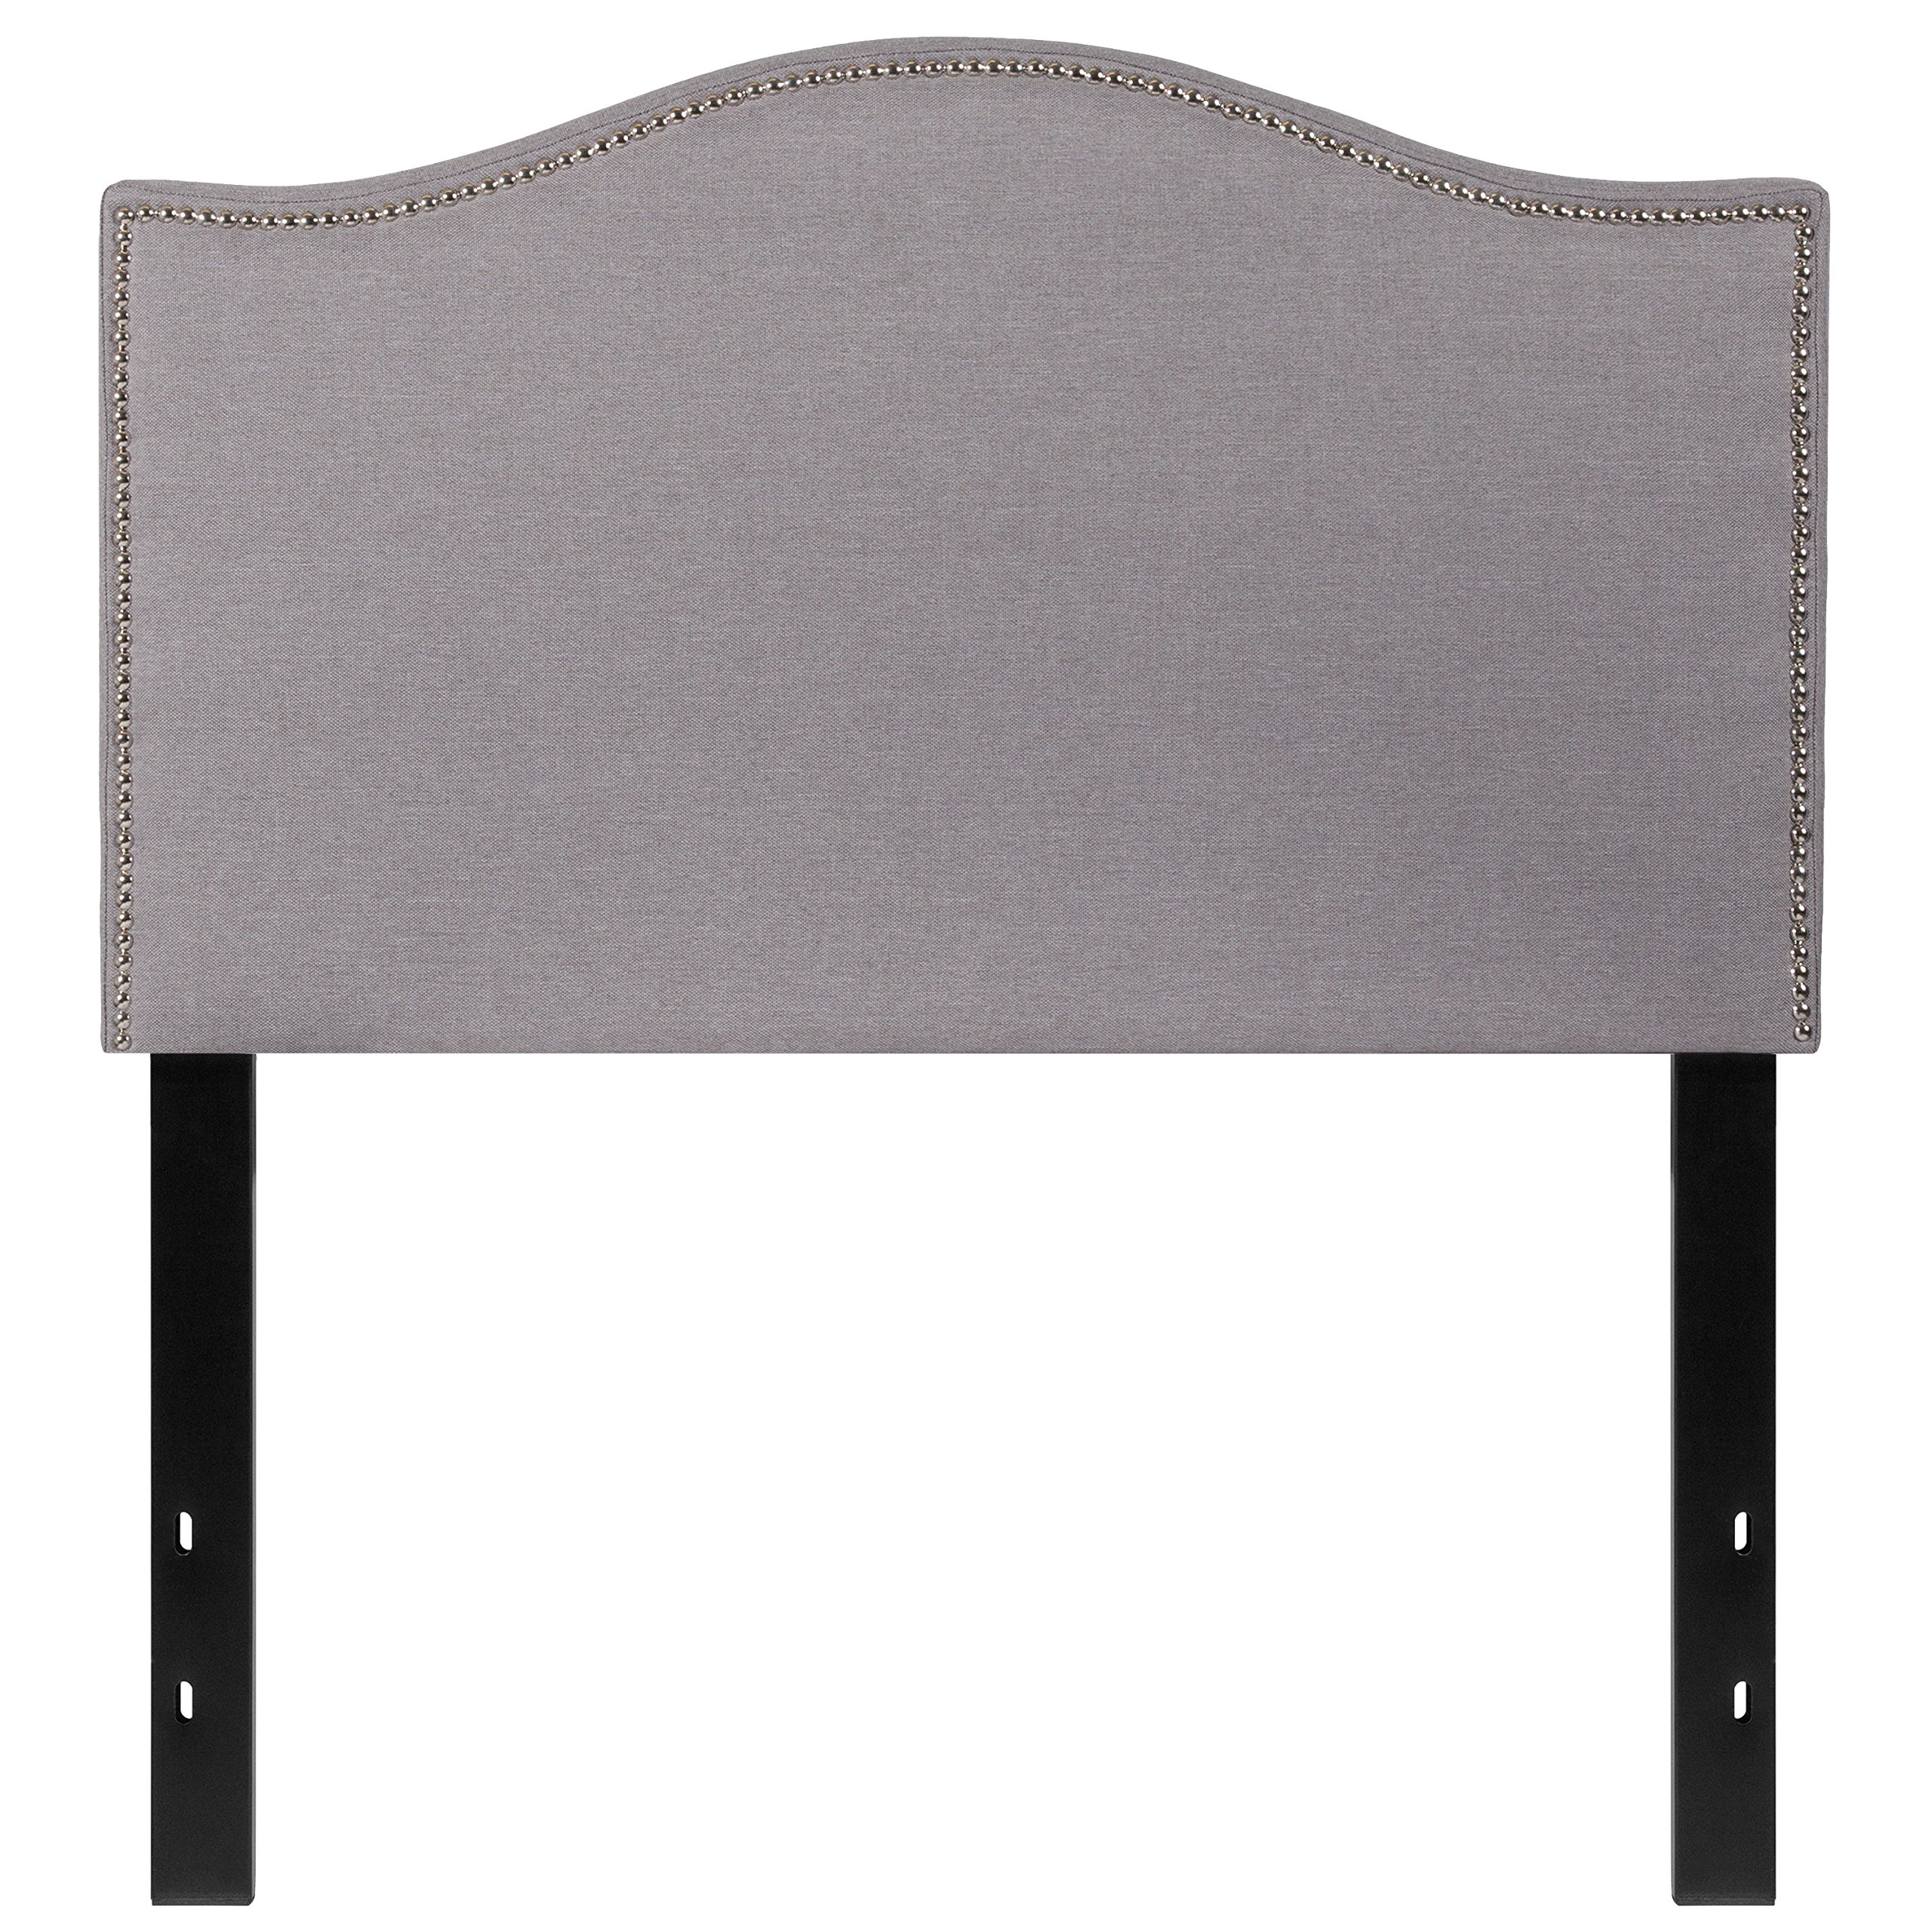 Flash Furniture Lexington Upholstered Twin Size Headboard with Decorative Nail Trim in Light Gray Fabric - HG-HB1707-T-LG-GG